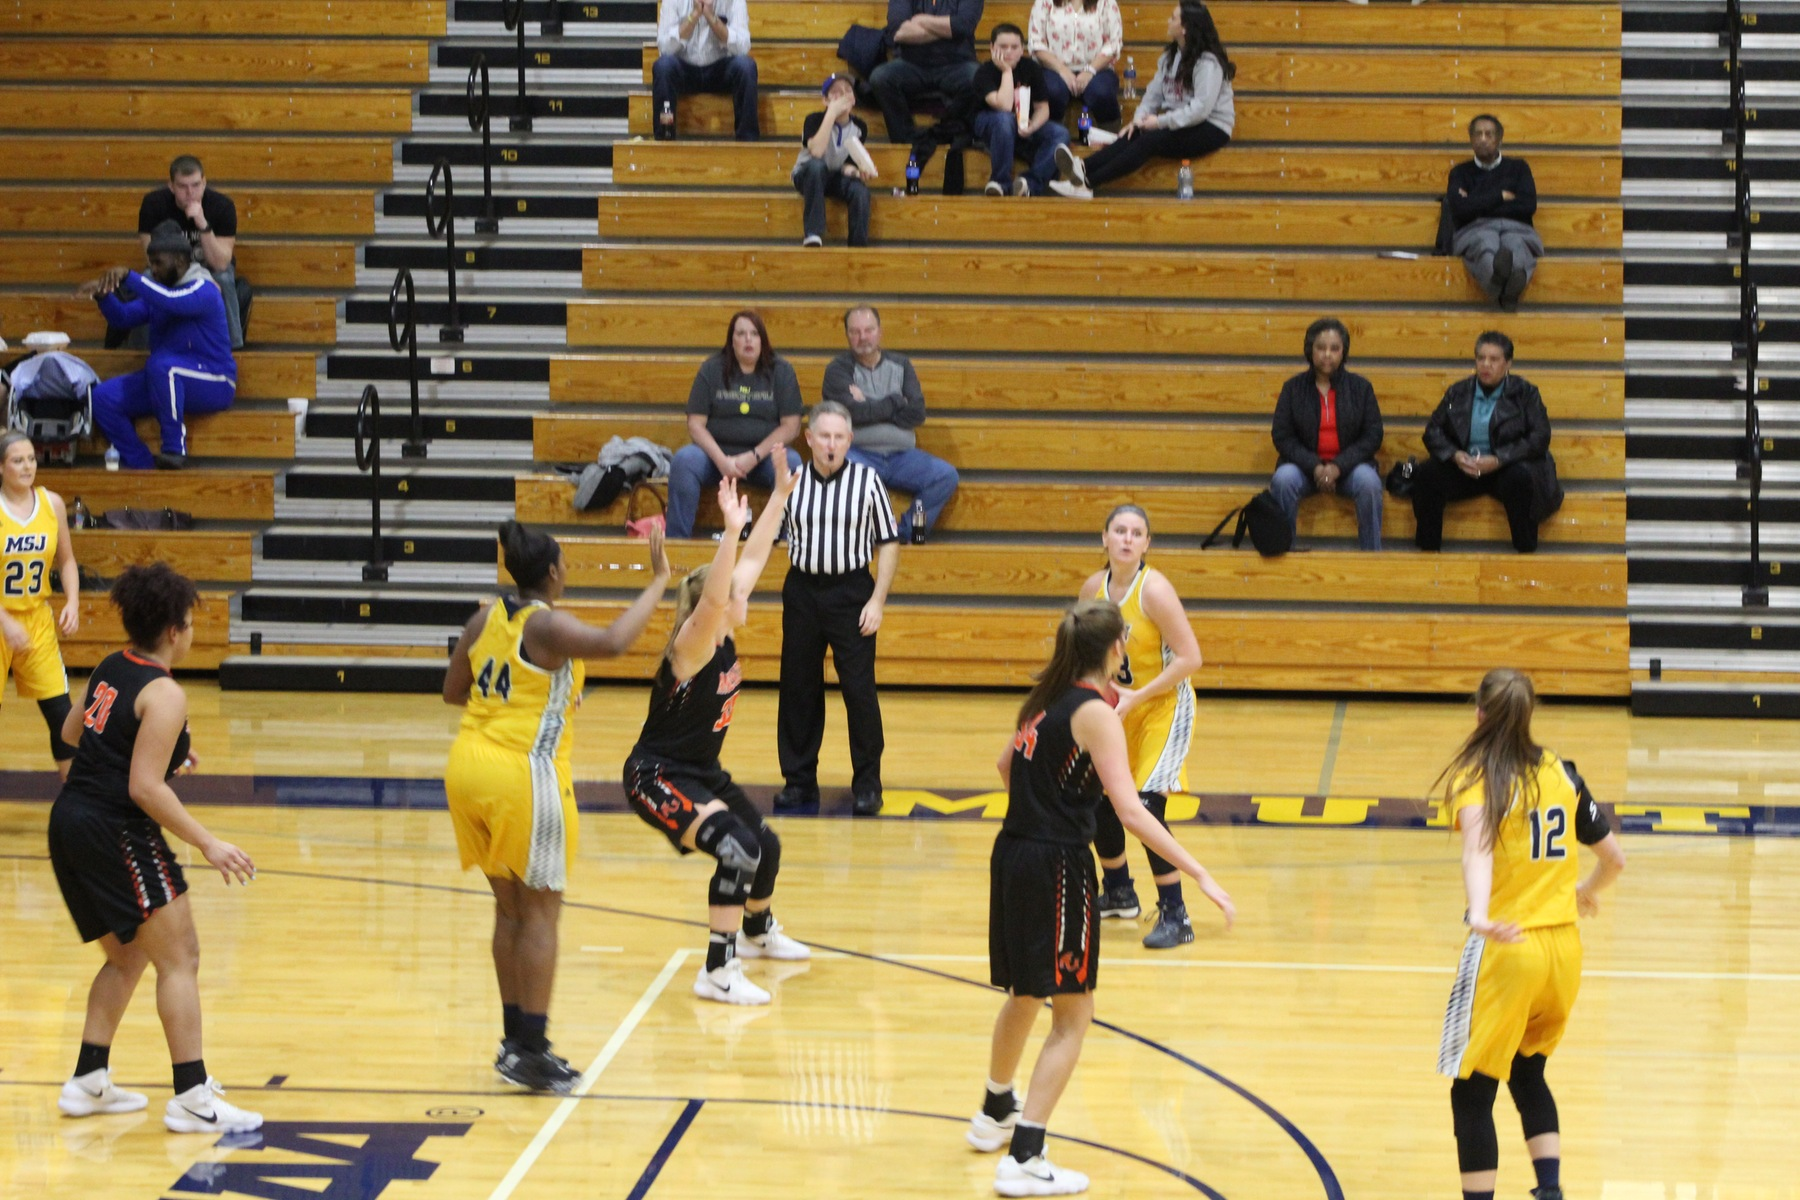 Lions fall in tough road loss against Transy